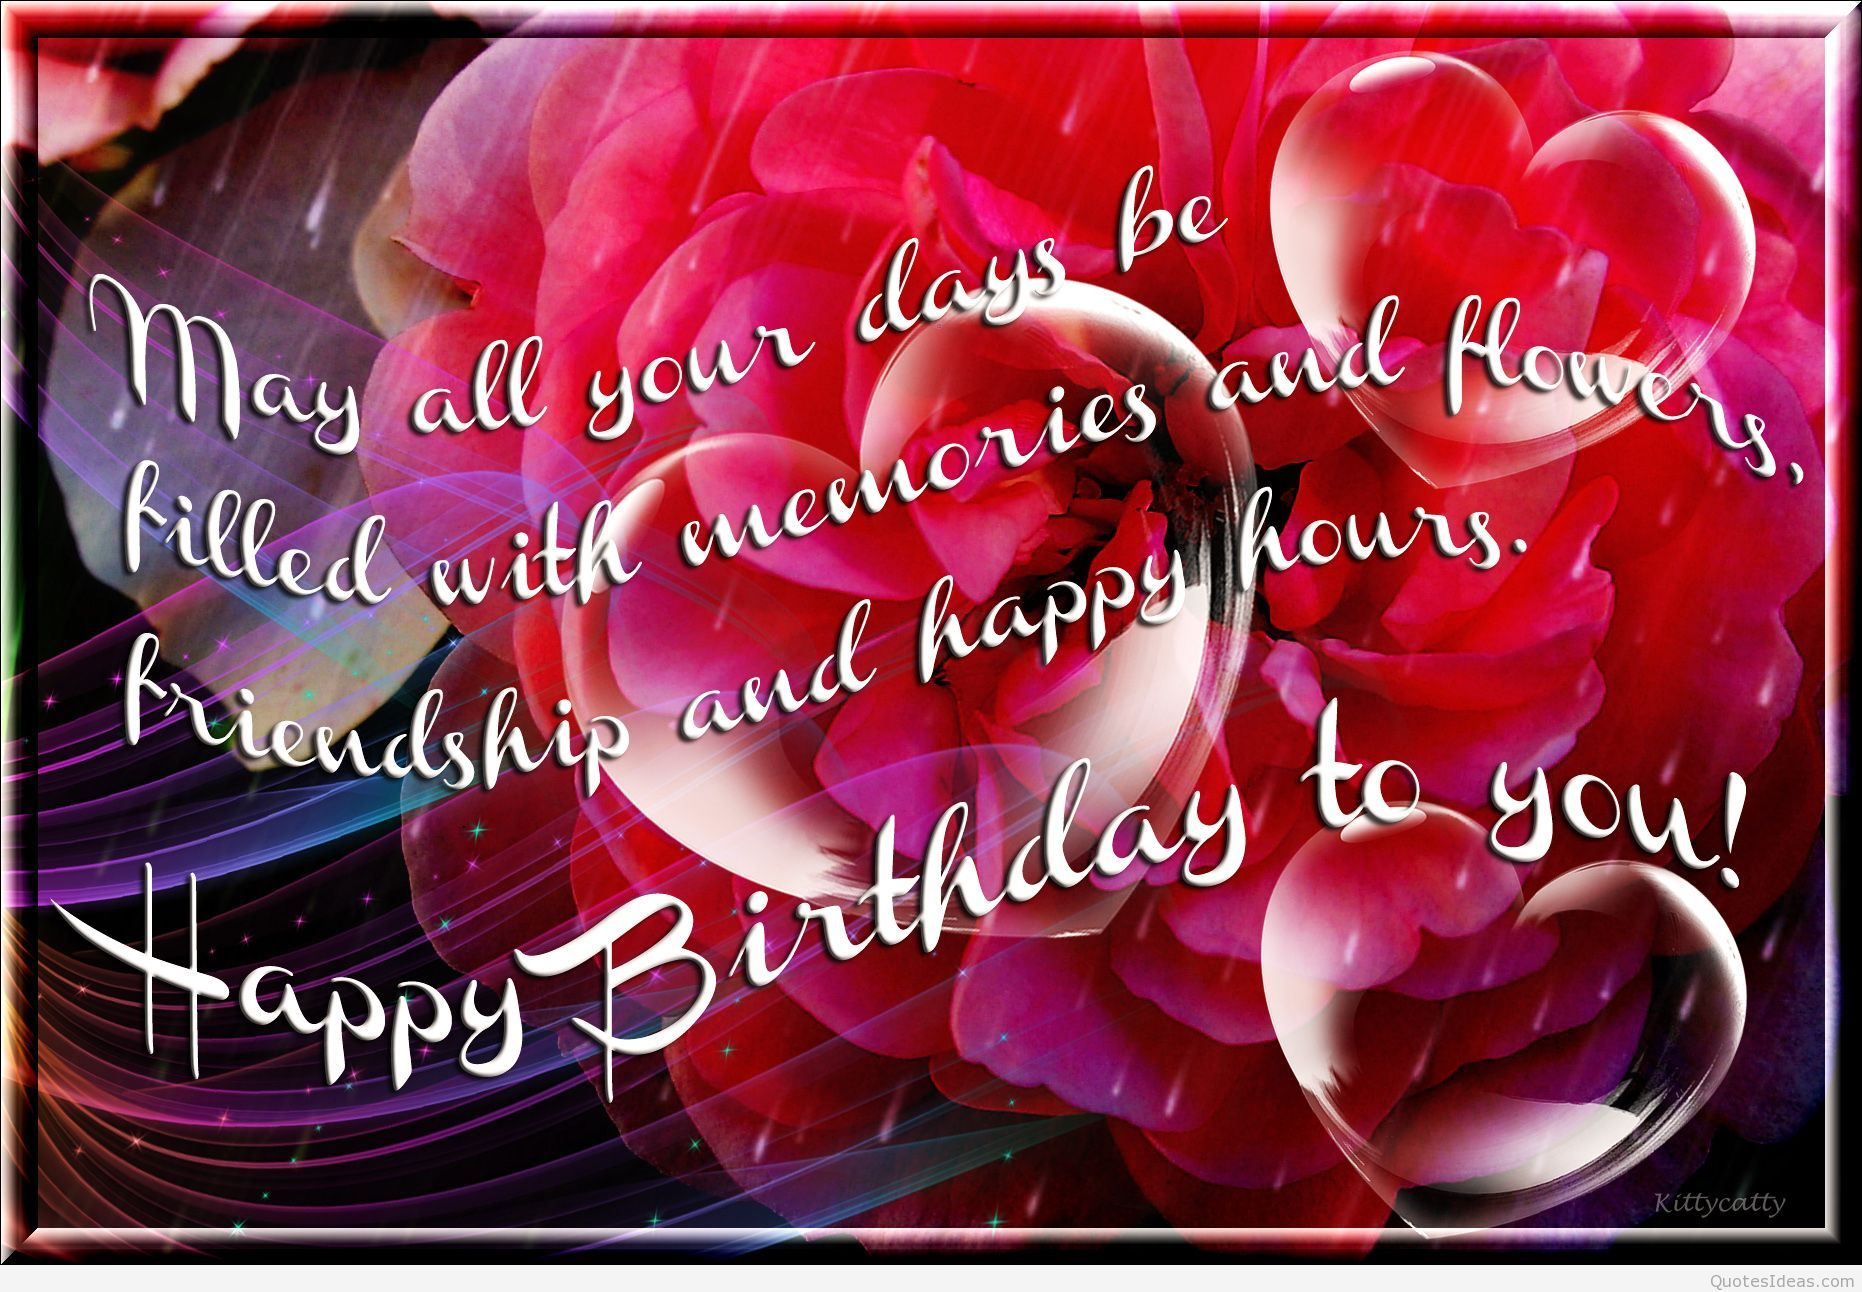 Happy birthdays quotes wallpapers | Happy birthday | Pinterest ...